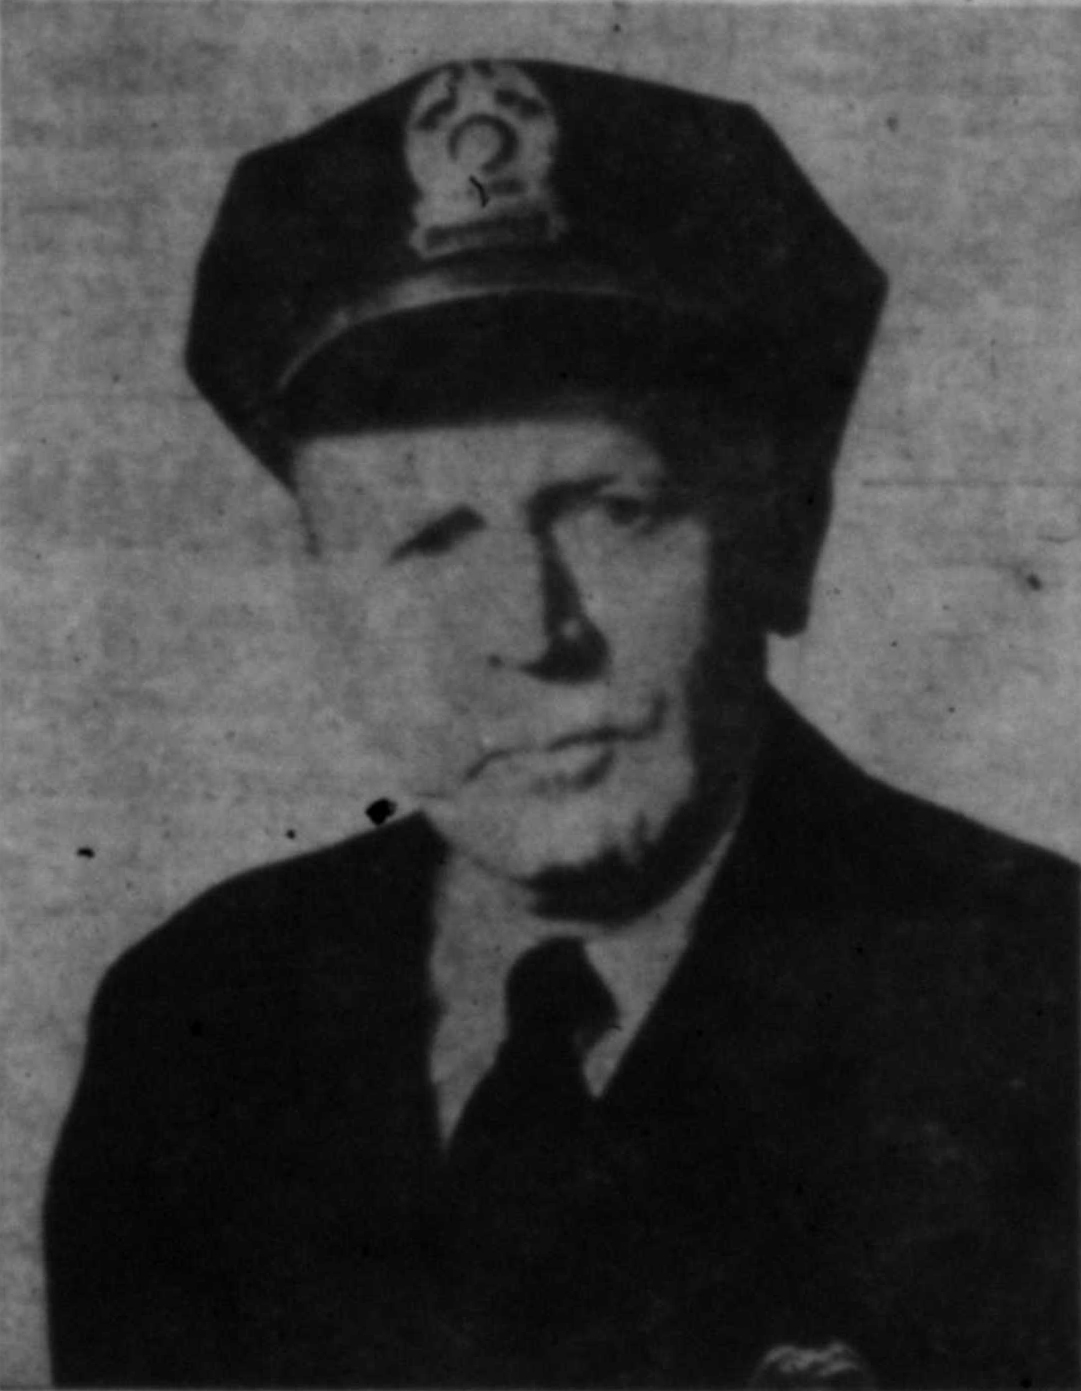 Police Chief Julius Paul Cruze | Lake City Police Department, Tennessee